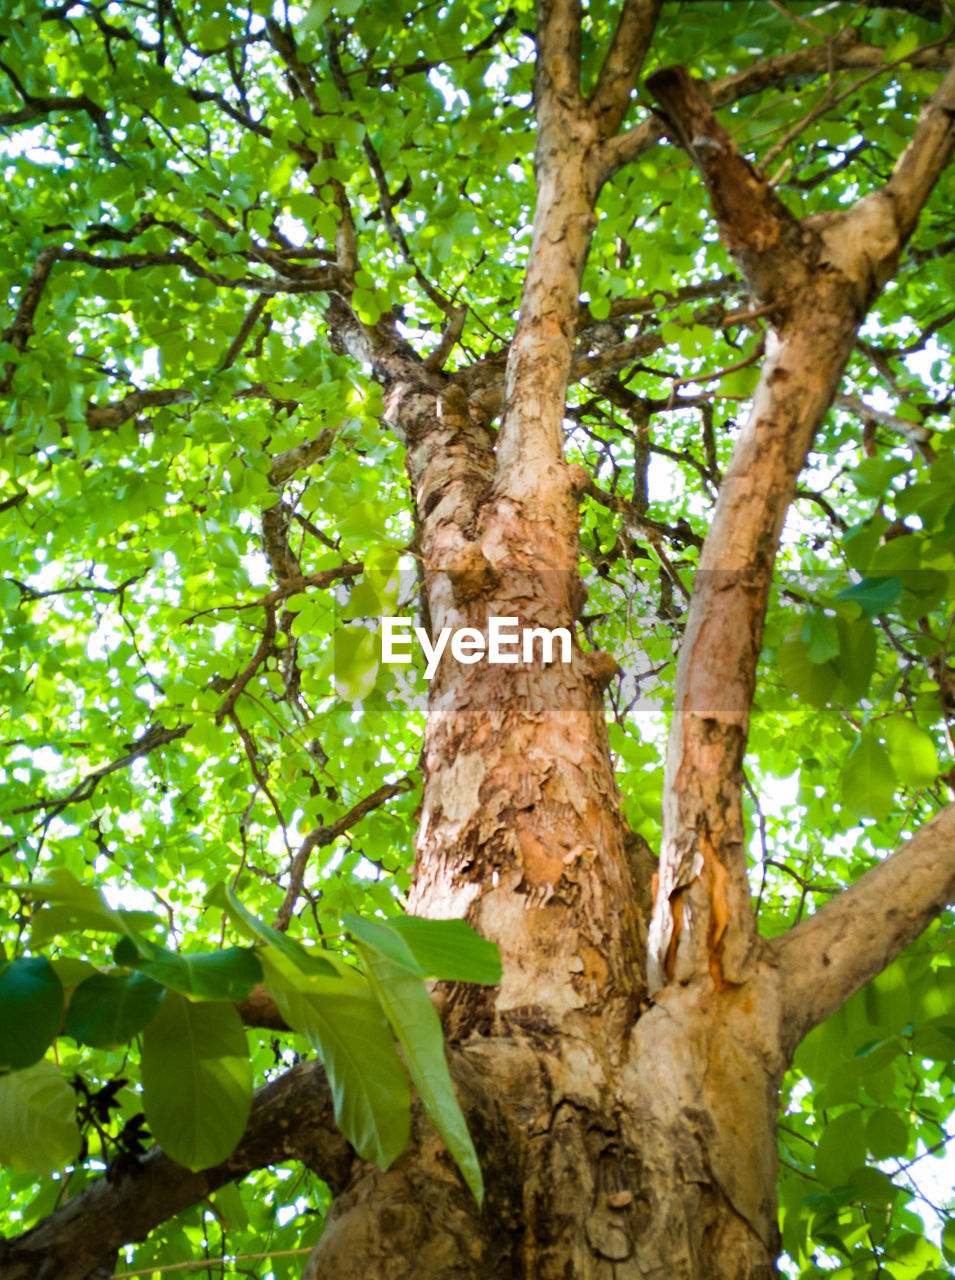 plant, tree, tree trunk, trunk, low angle view, nature, day, no people, plant part, growth, leaf, outdoors, branch, forest, beauty in nature, green color, close-up, tranquility, focus on foreground, foliage